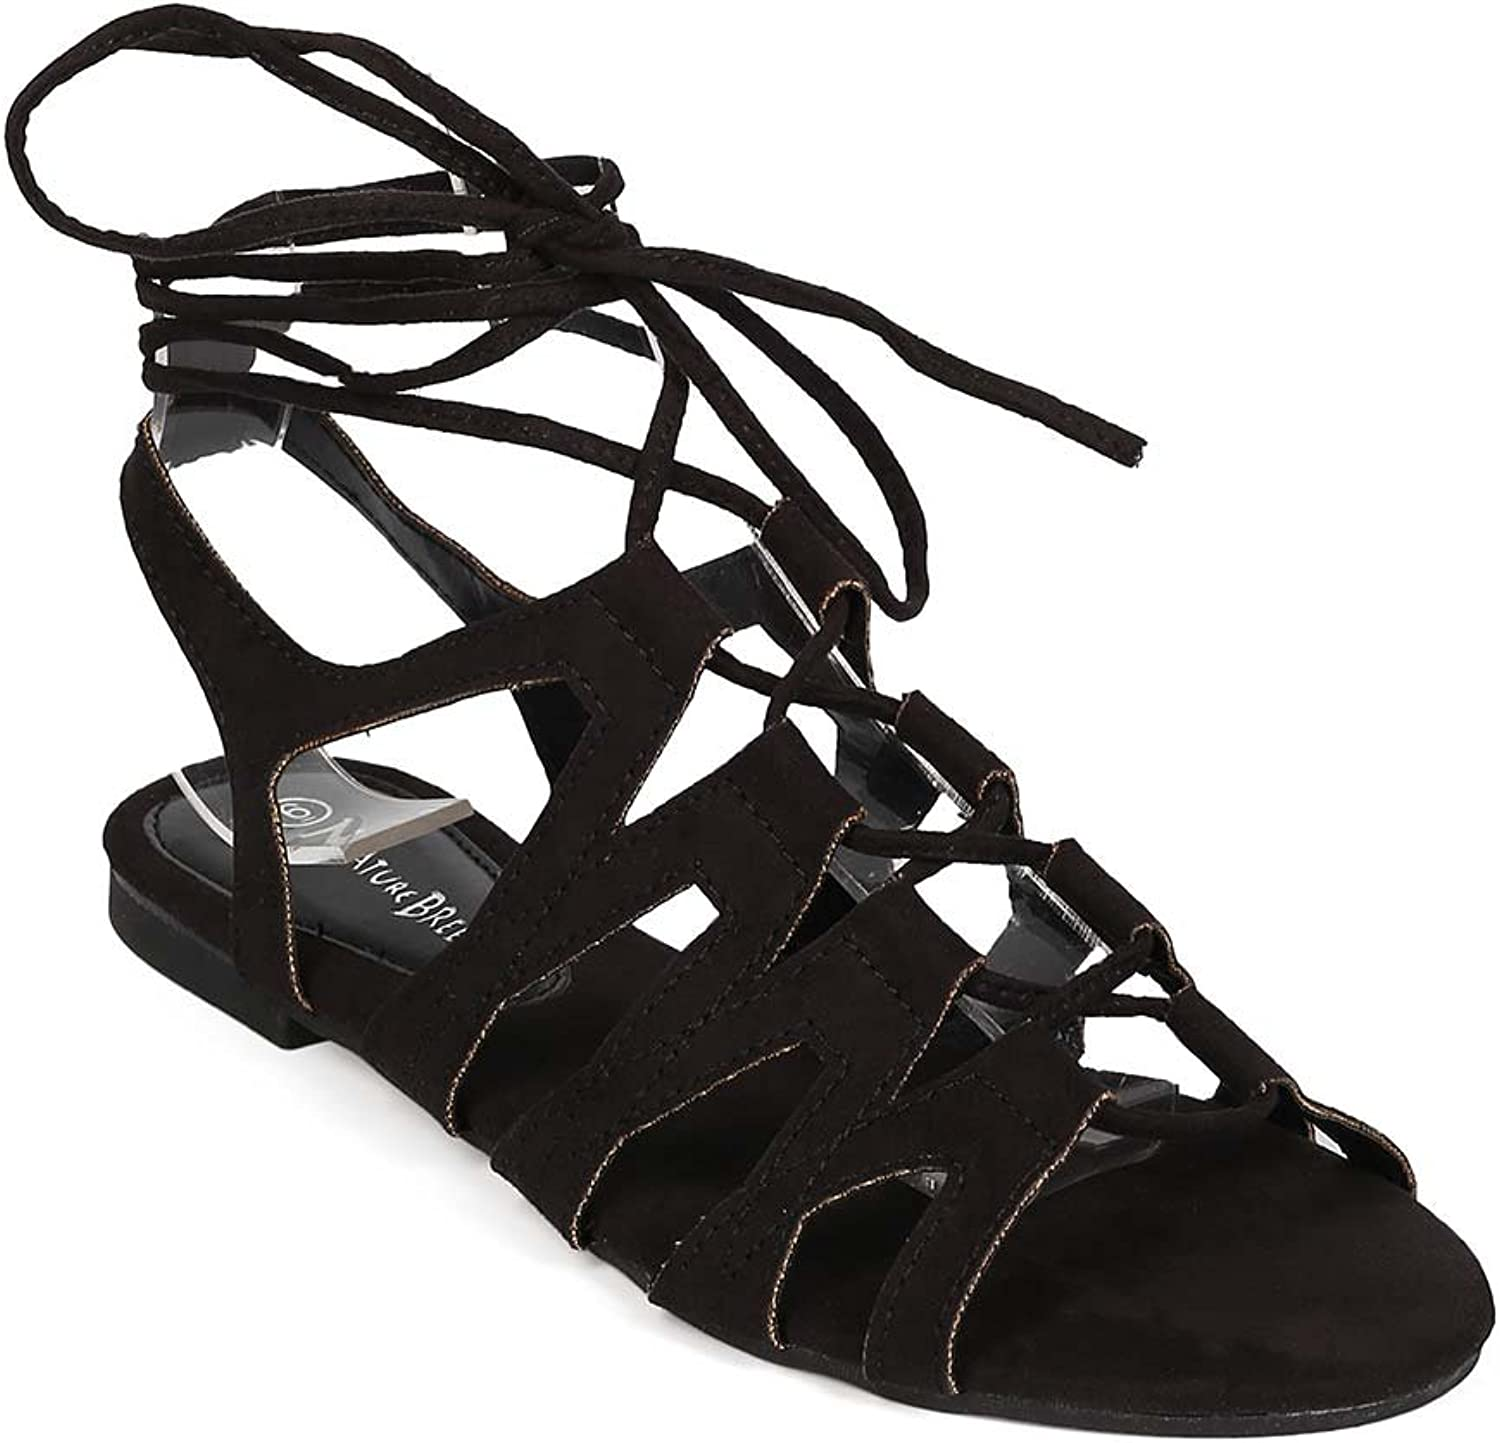 Nature Breeze EG25 Women Suede Open Toe Gilly Tie Gladiator Wrap Sandal - Black